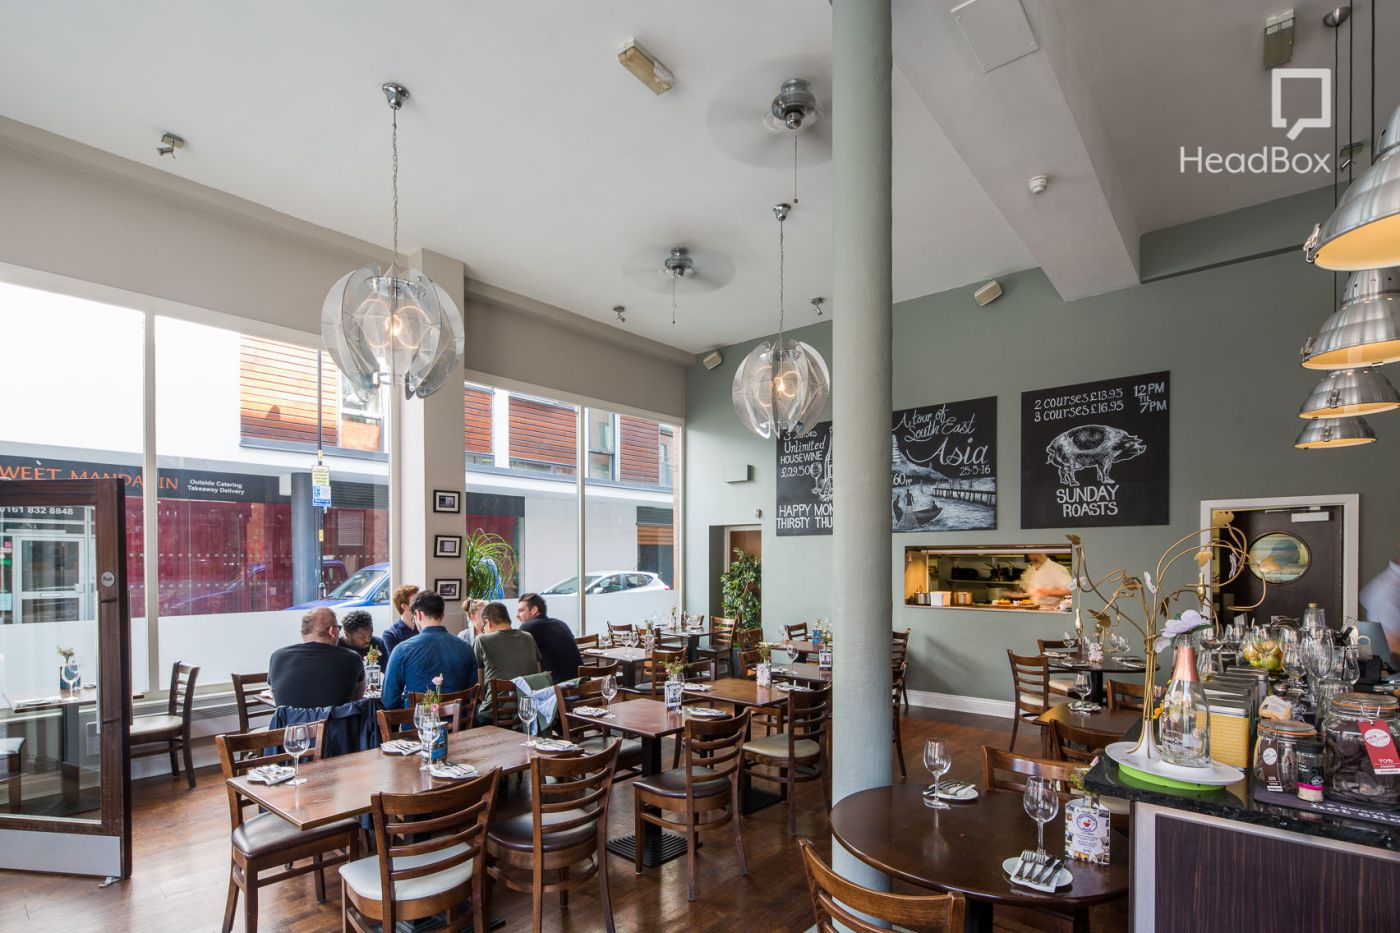 An open plan Manchester restaurant with dark wooden table and chairs